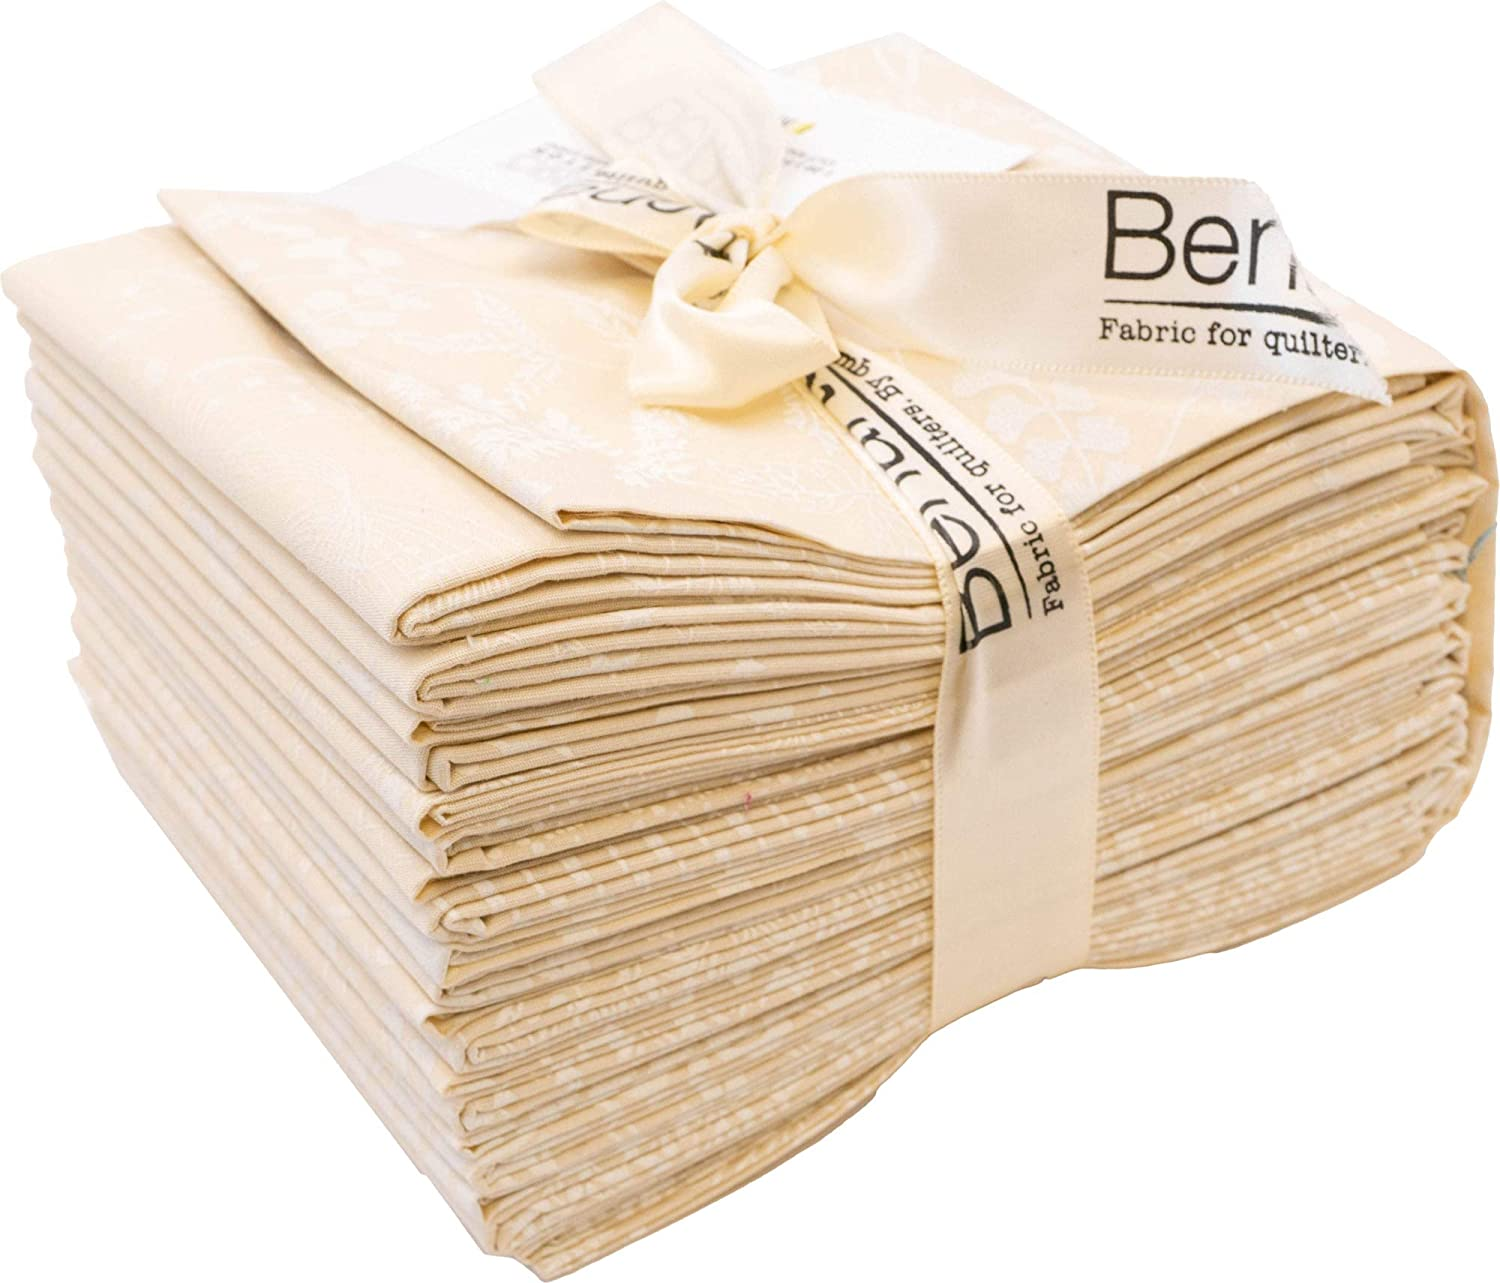 KanvasBetter Basics Ecru 20pc Fat Quarter Bundle Benartex